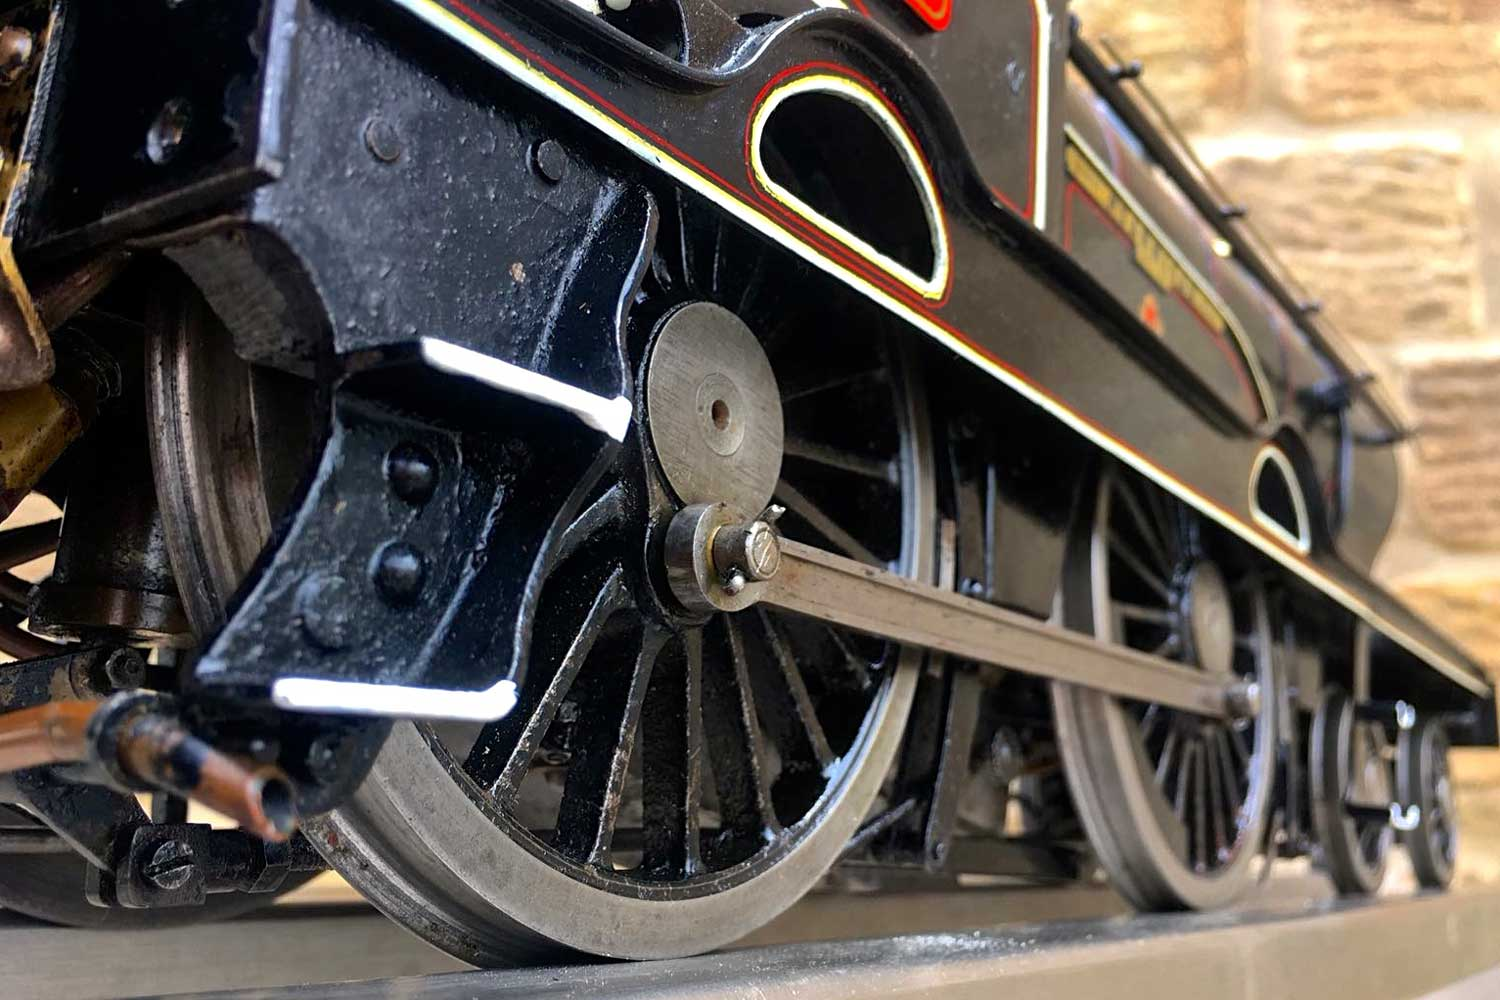 test 3-and-a-half-inch-LNWR-King-George-the-Fifth-live-steam-locomotive-for-sale-04